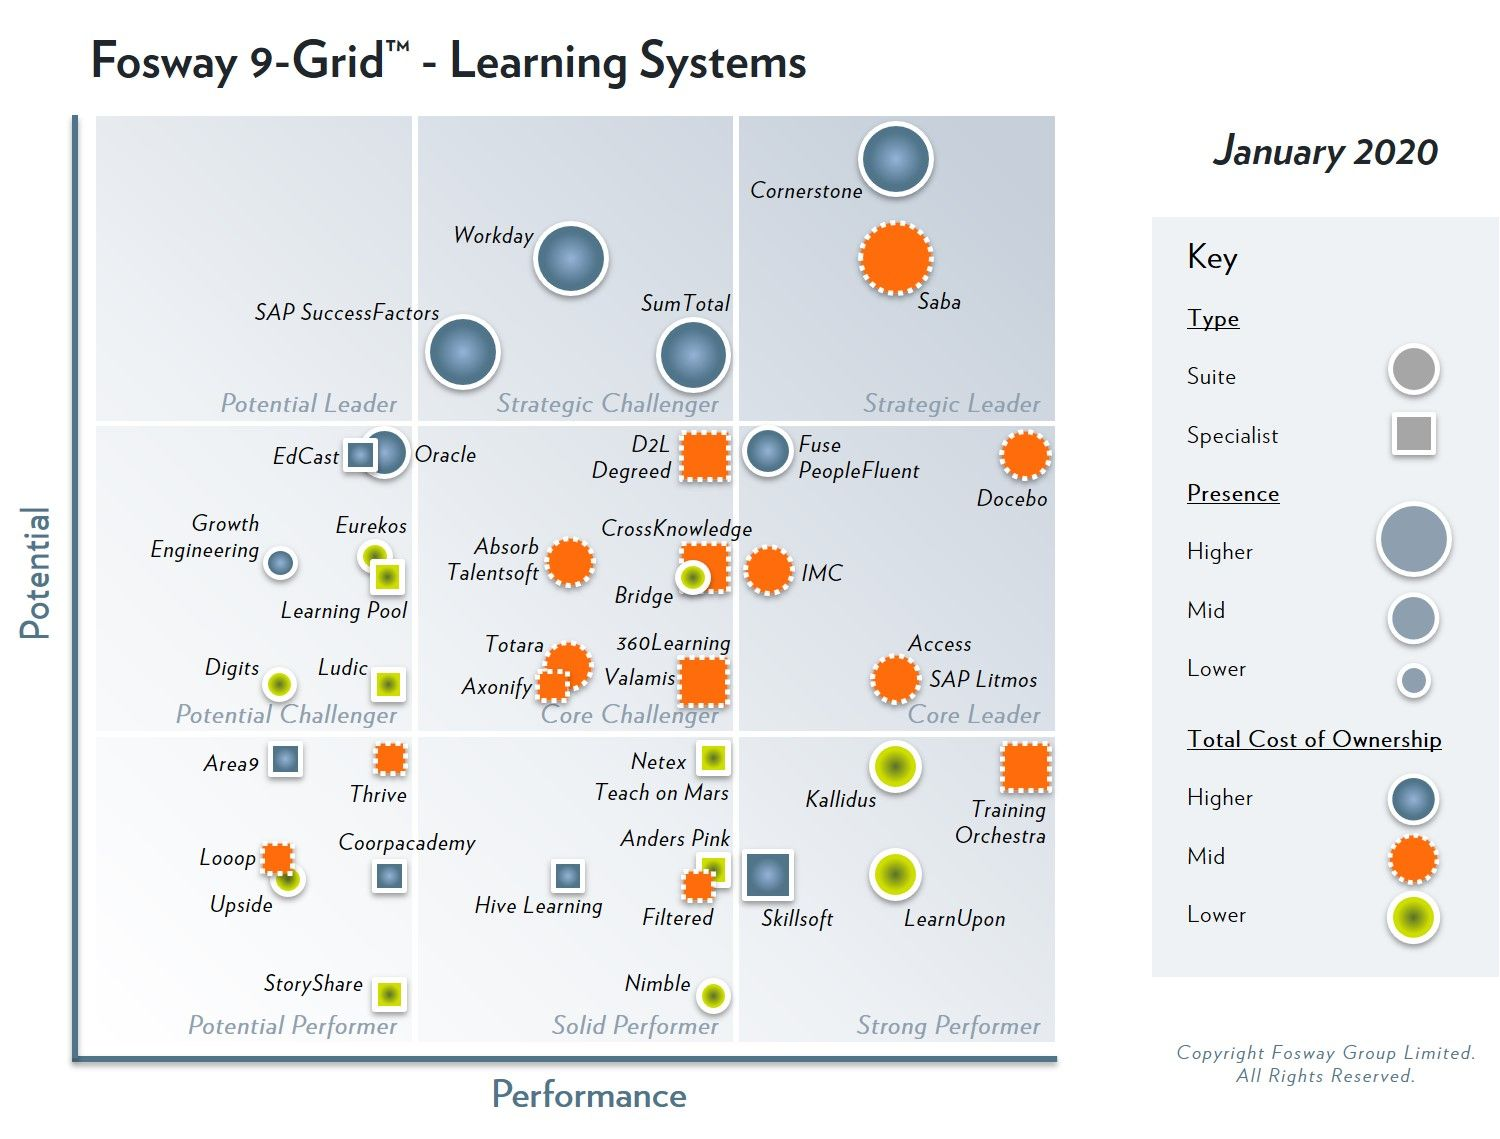 Fosway 9-Grid for Learning Systems